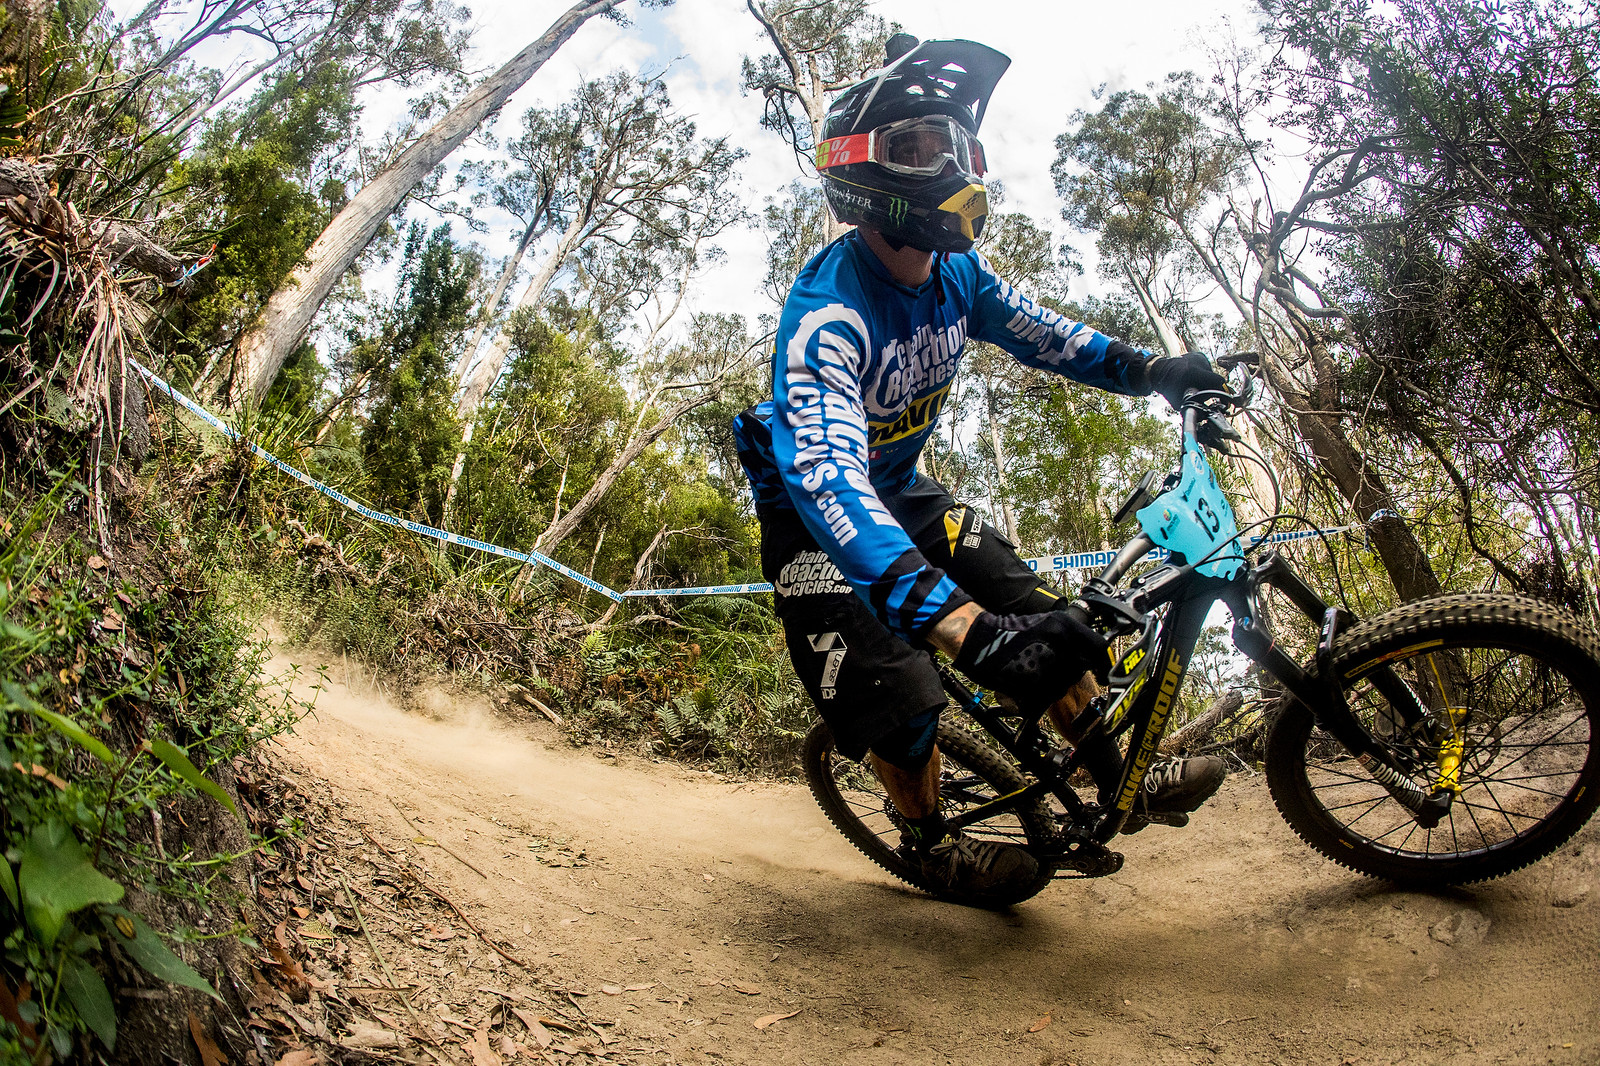 There is talk that Sam Hill did a monster gap on the track today. Just like in his DH days when everyone would whisper about some of Sam Hill's crazy sneaky one off lines.